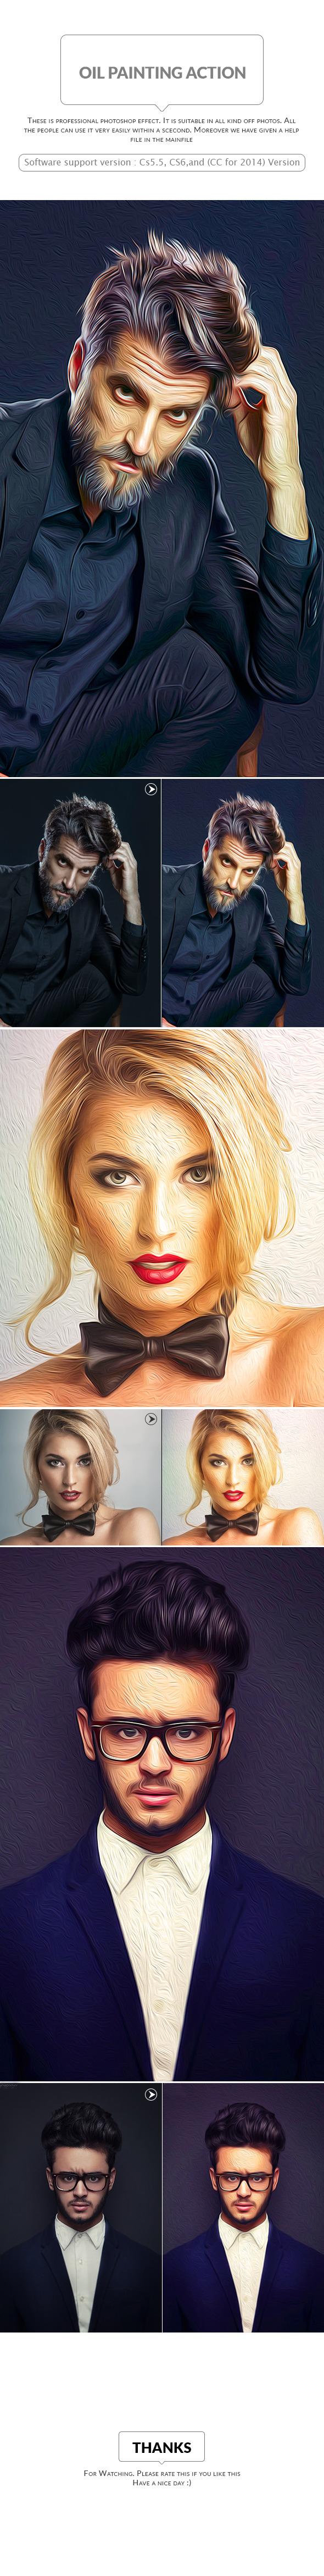 Oil Painting Action - Photo Effects Actions